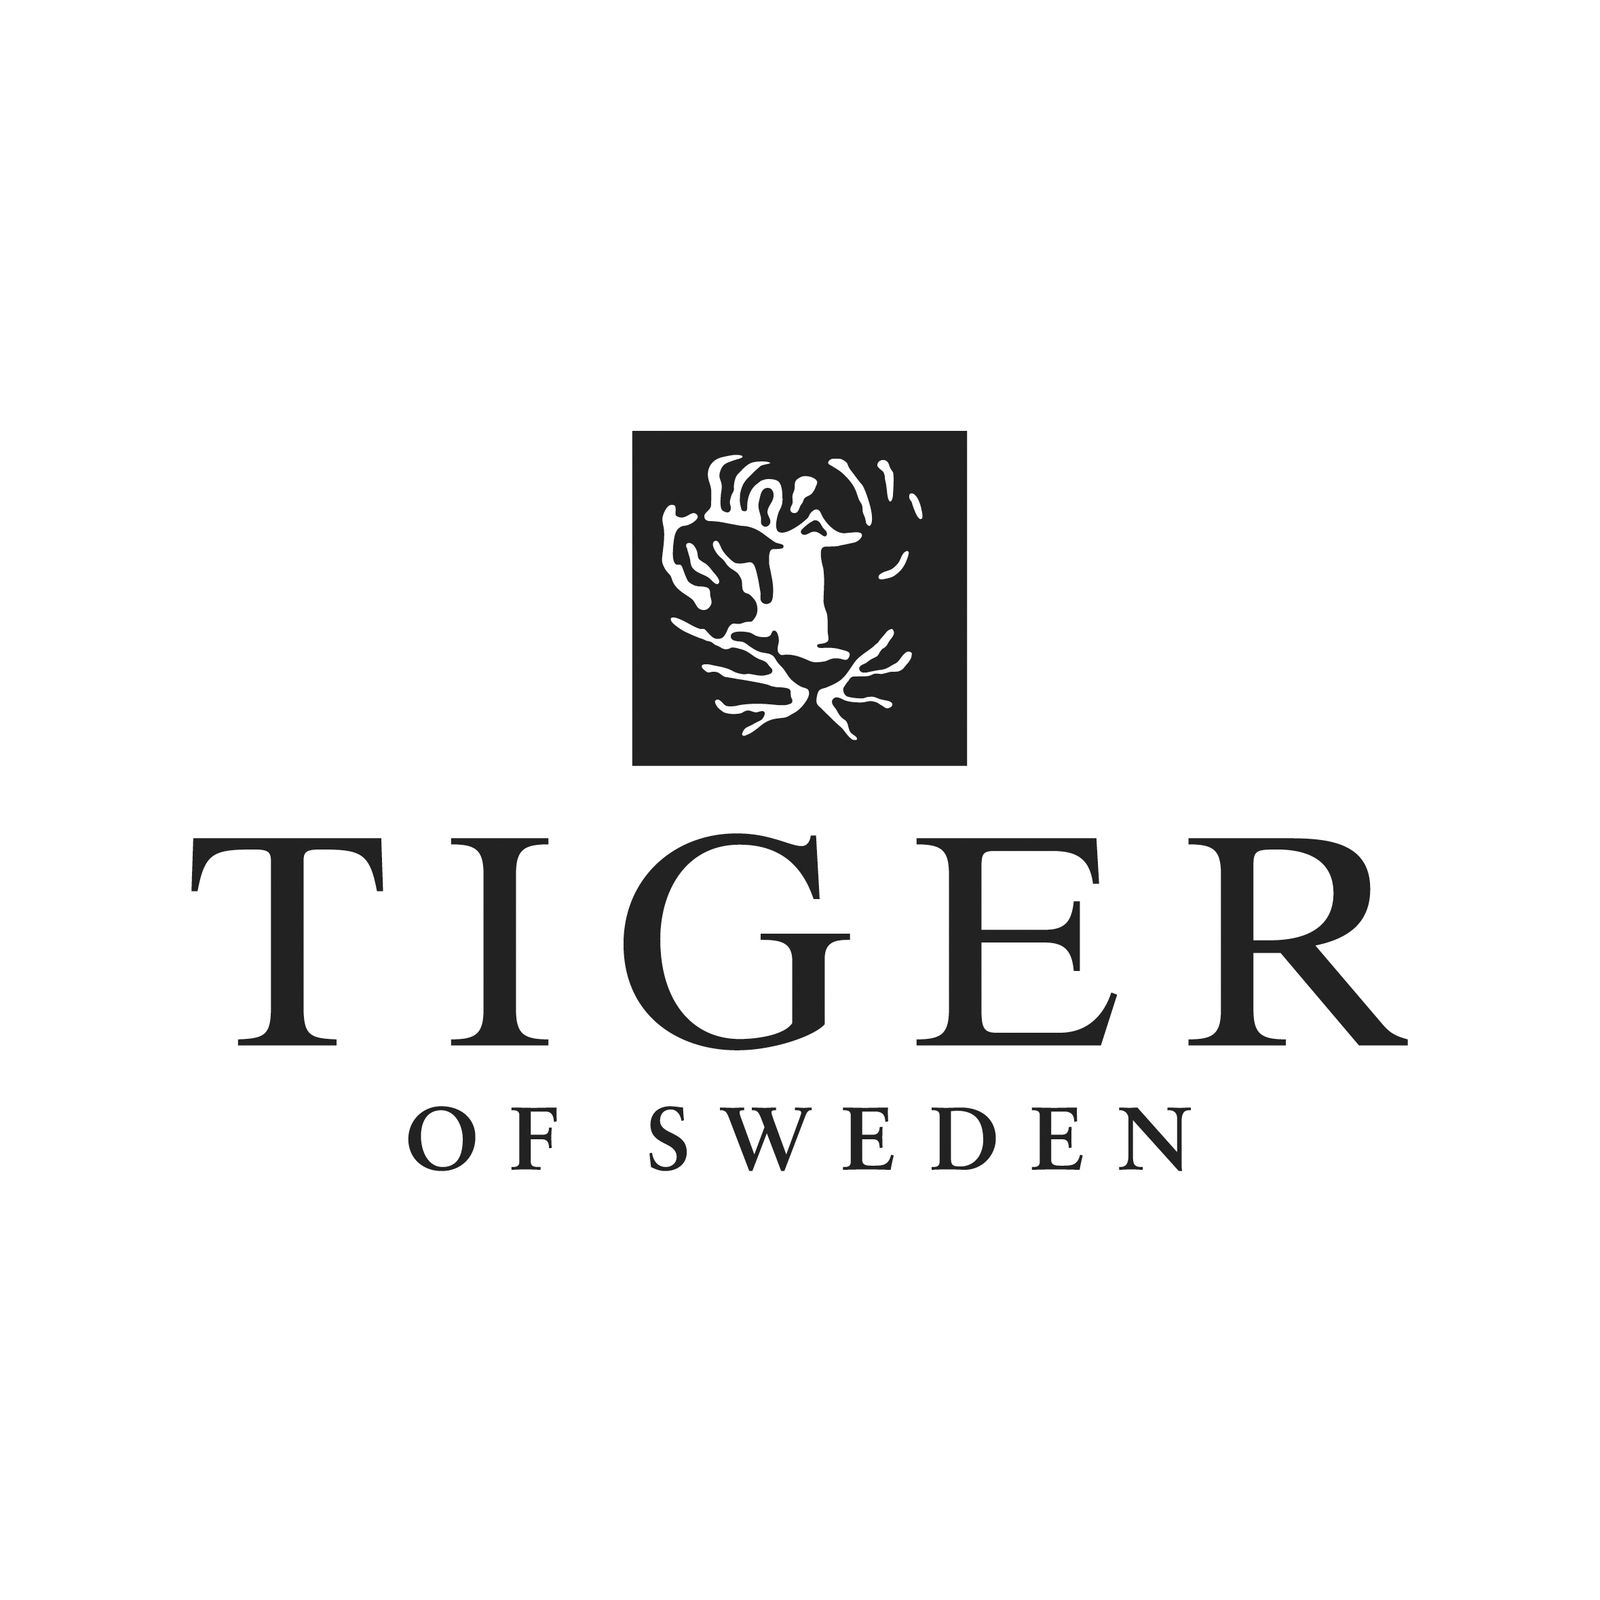 TIGER OF SWEDEN (Image 1)